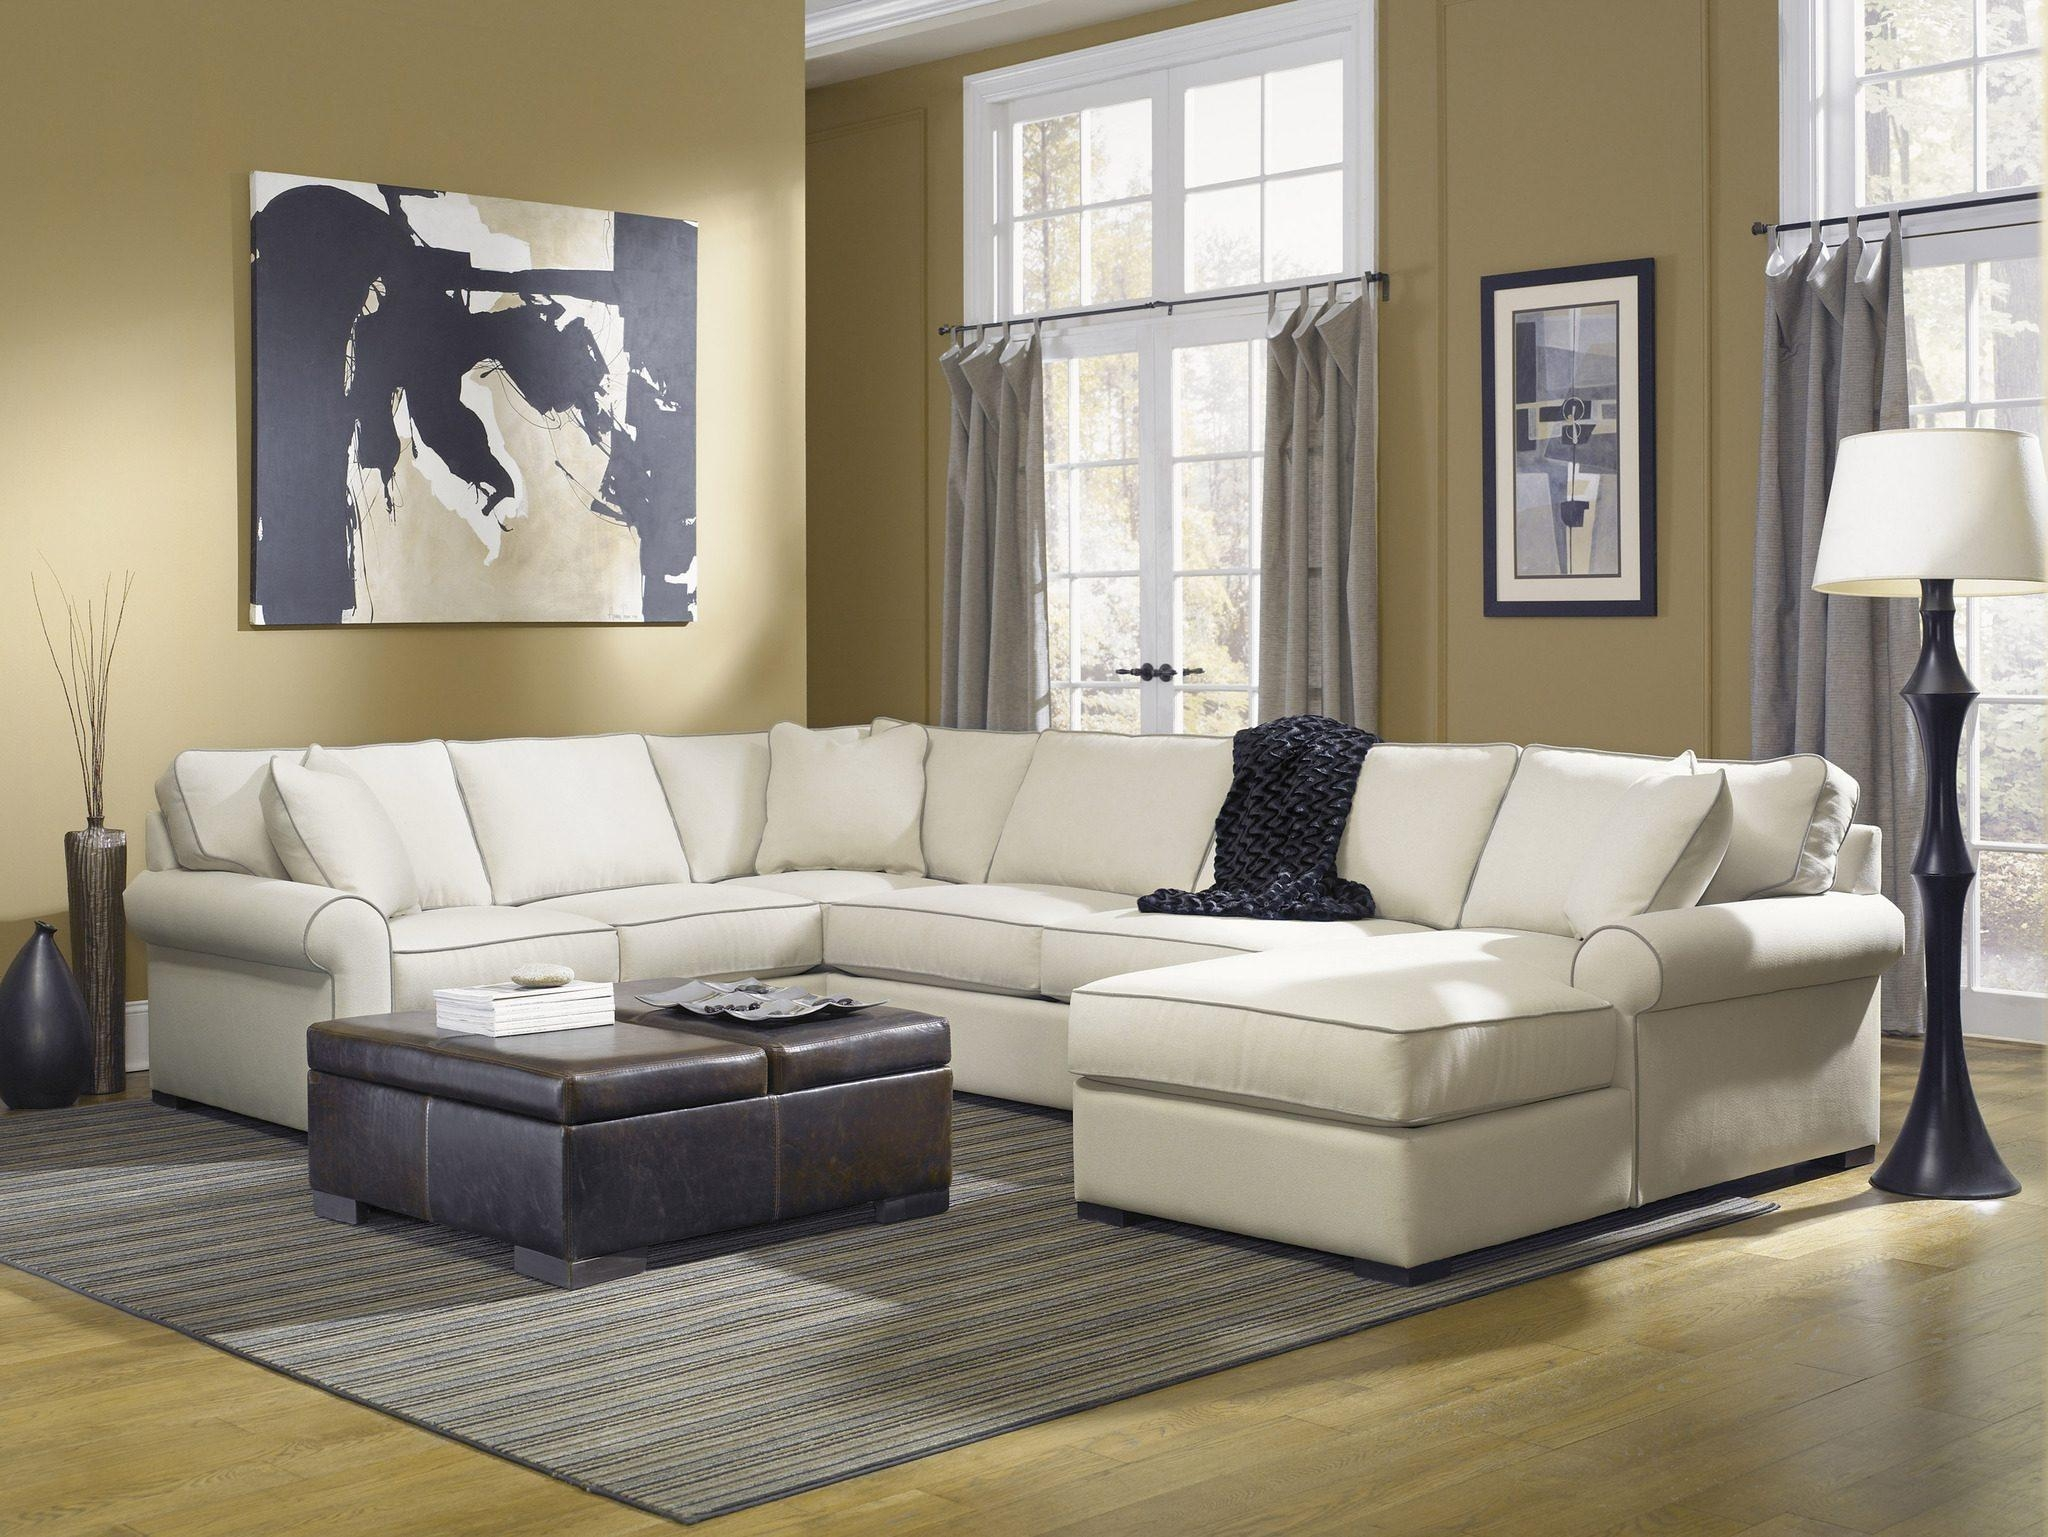 Furniture: Robert Michaels Furniture | Down Filled Couches | Down Regarding Down Feather Sectional Sofa (View 9 of 15)